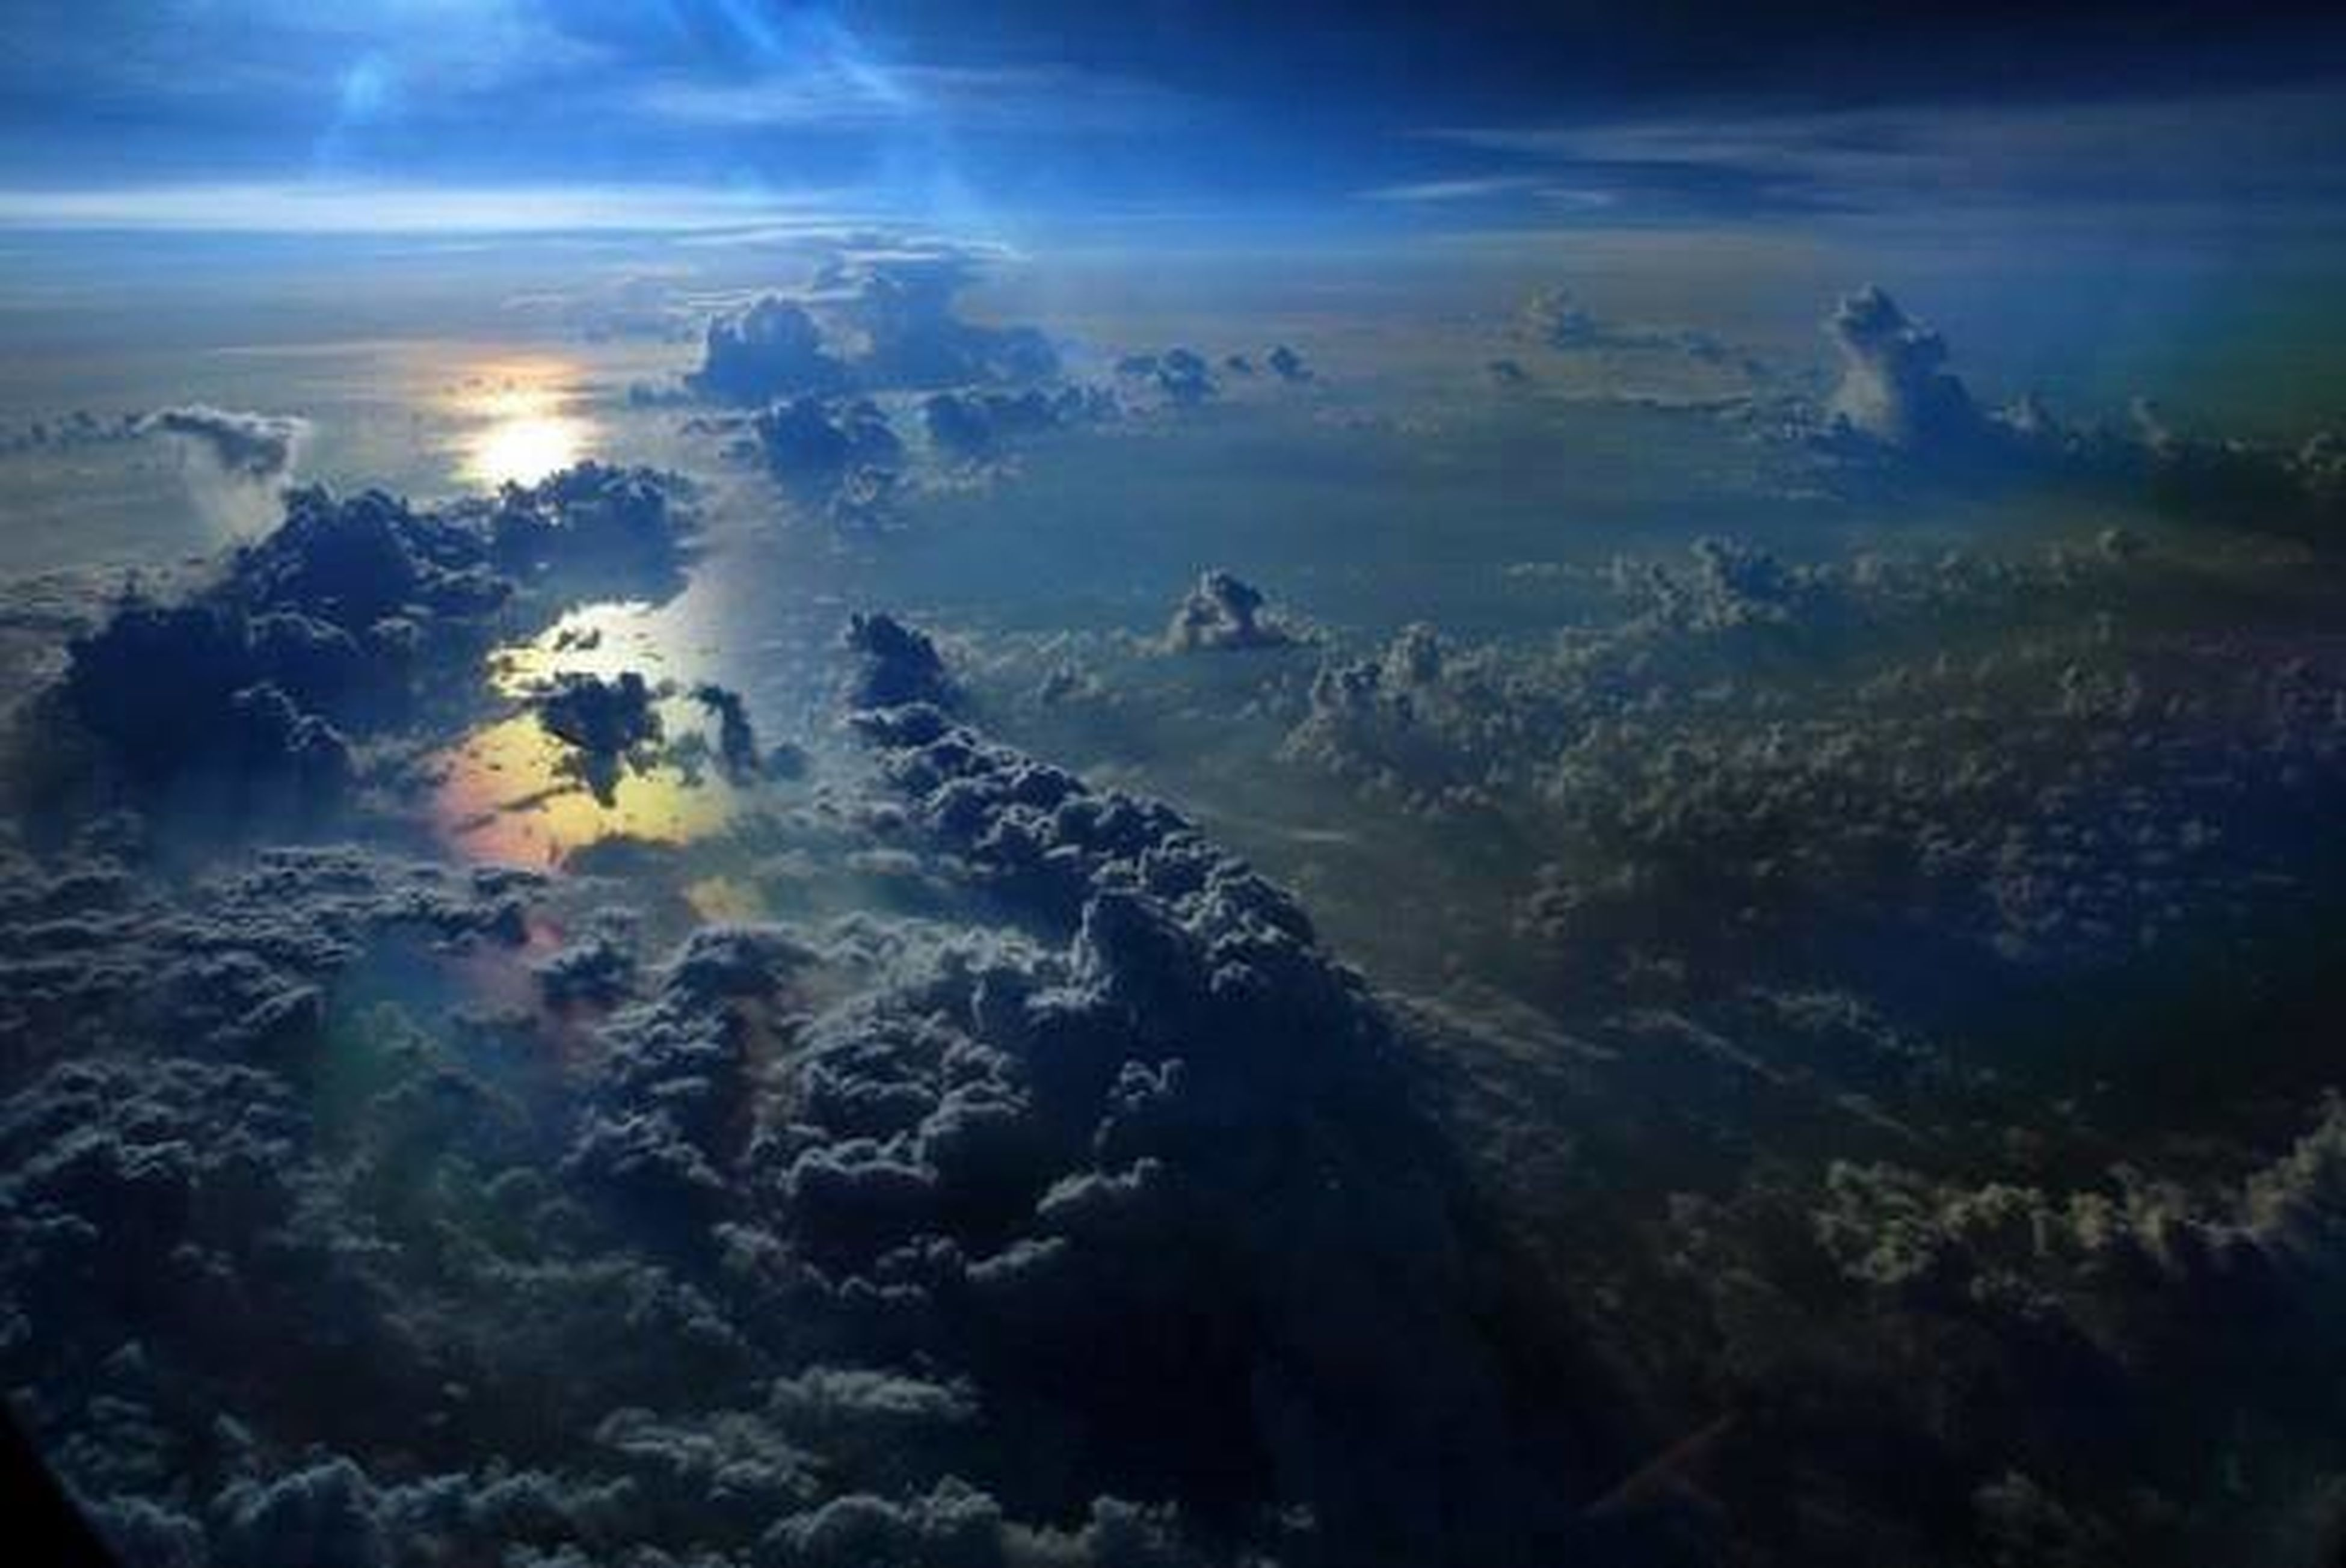 scenics, beauty in nature, sky, tranquil scene, tranquility, cloud - sky, nature, idyllic, aerial view, cloudy, sea, water, cloud, sunset, outdoors, non-urban scene, cloudscape, landscape, majestic, high angle view